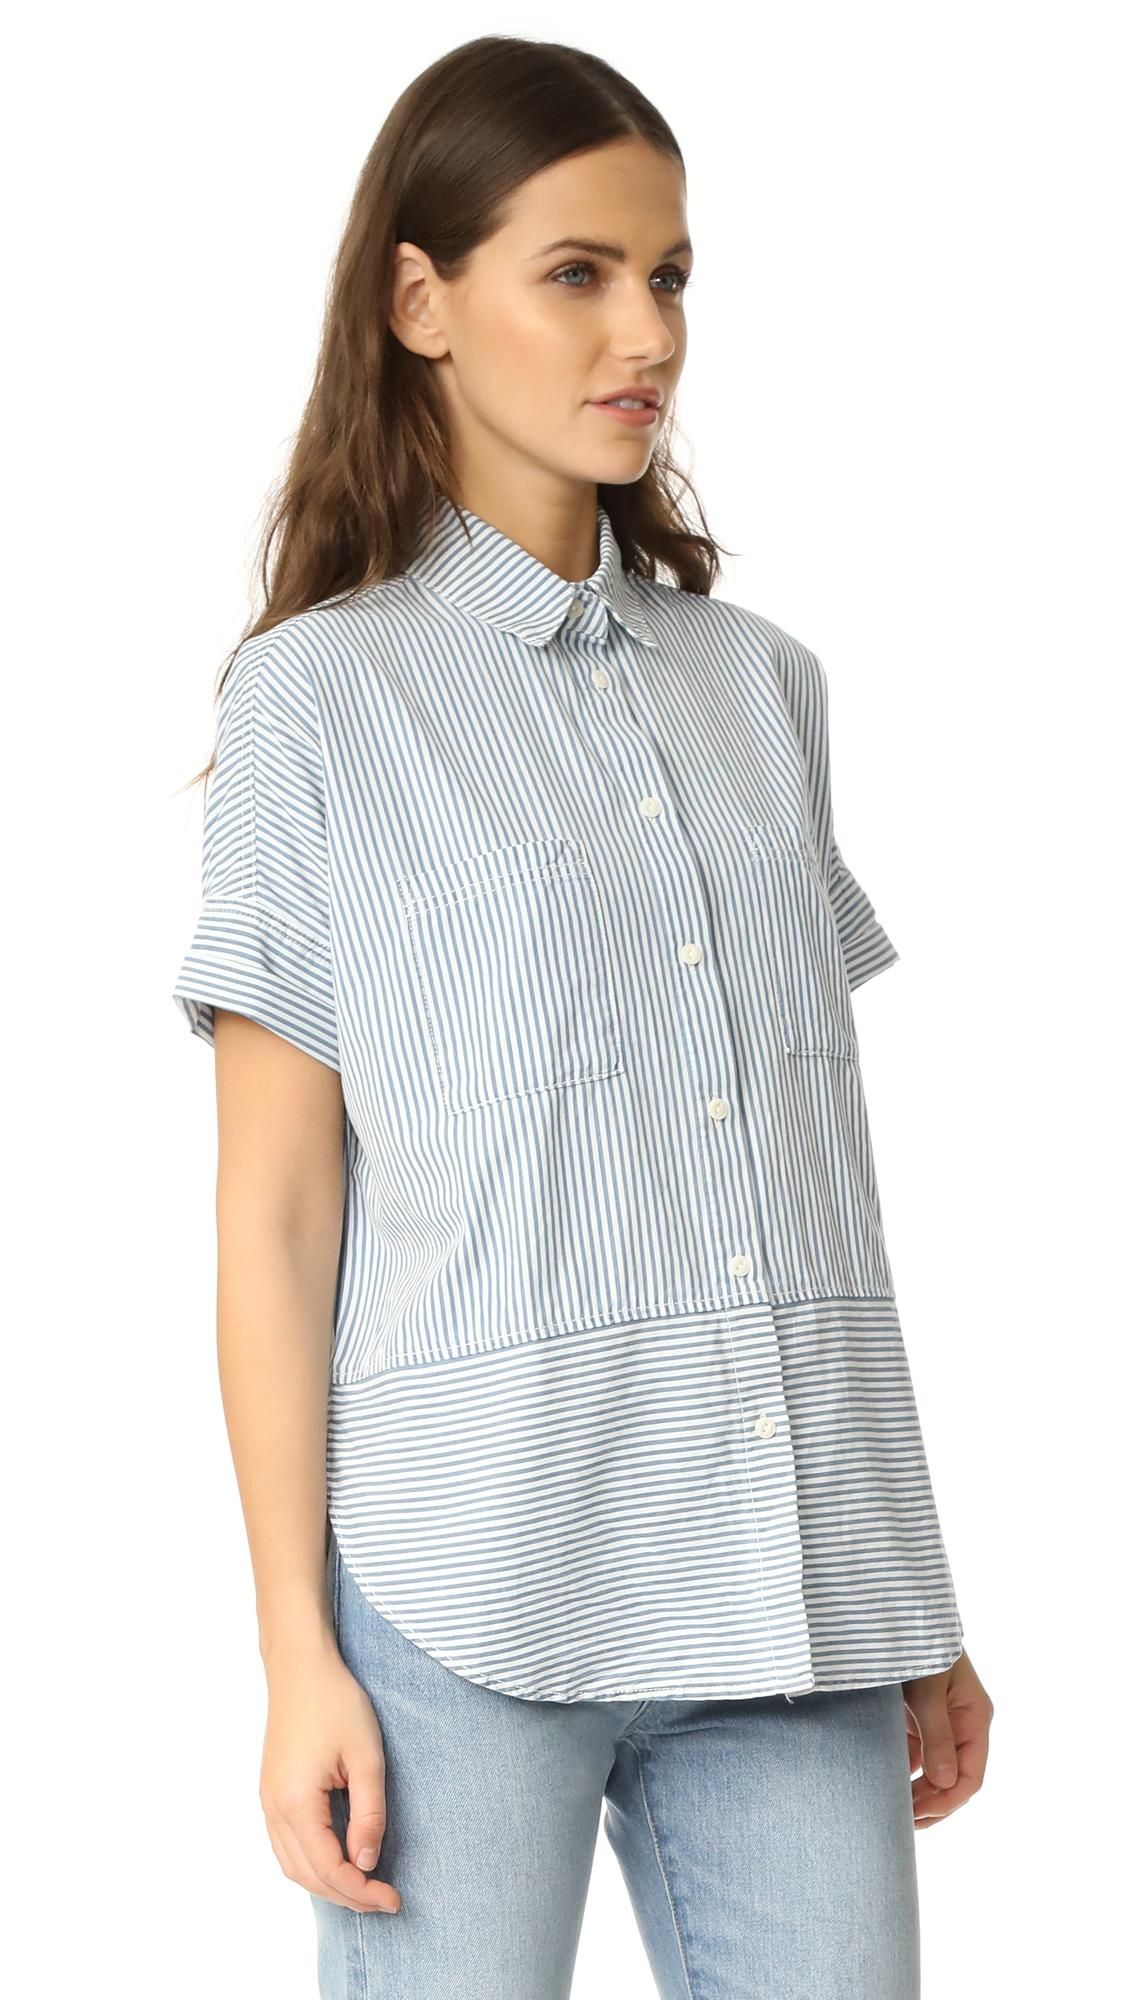 2a724fdb Madewell Courier Shirt in Blue - Lyst